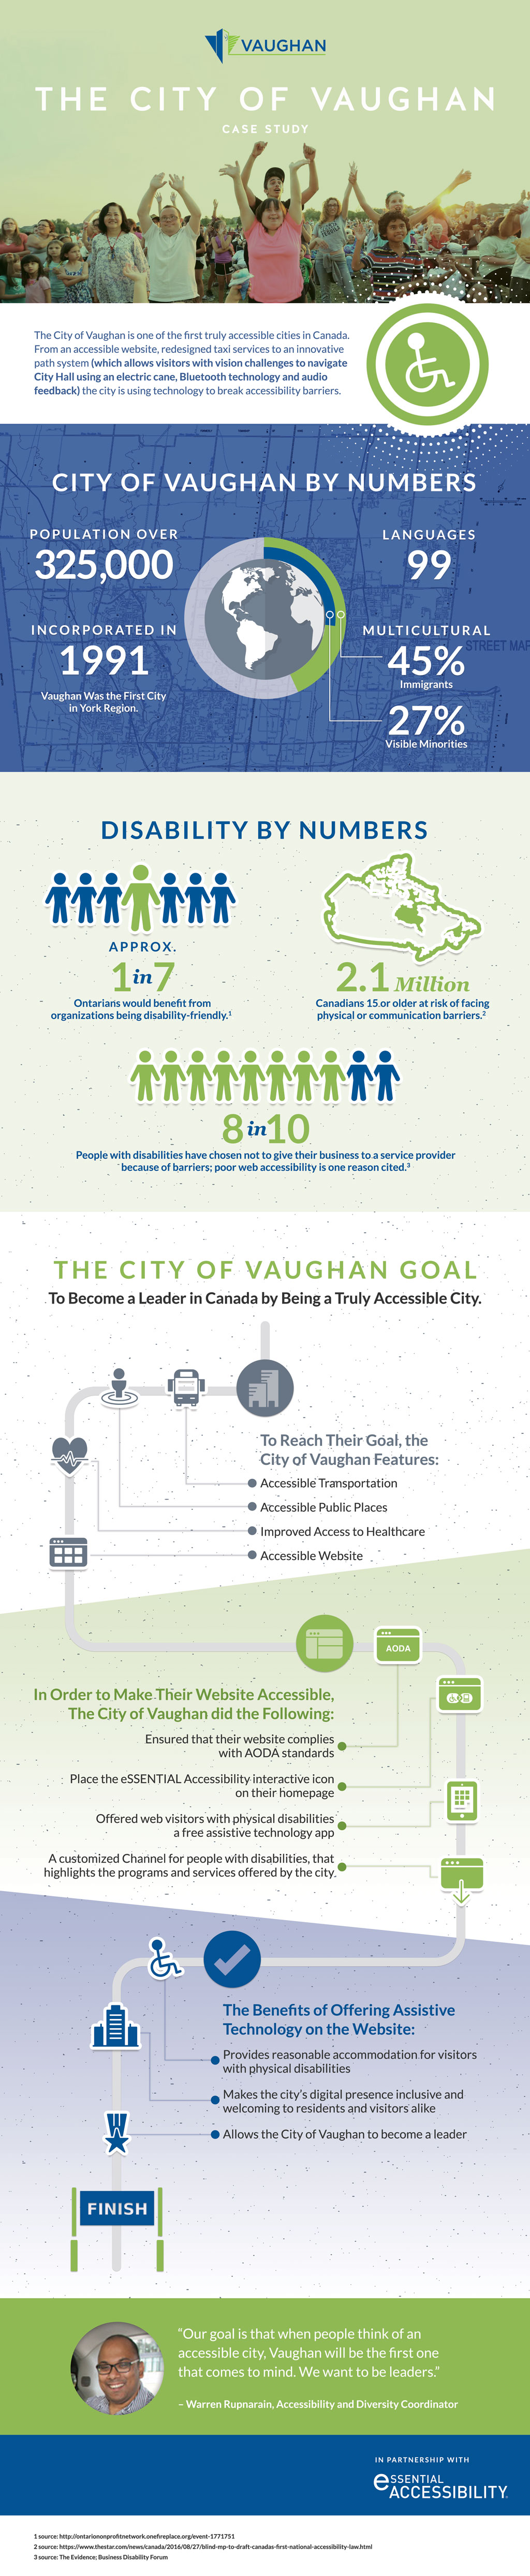 City of Vaughan Infographic